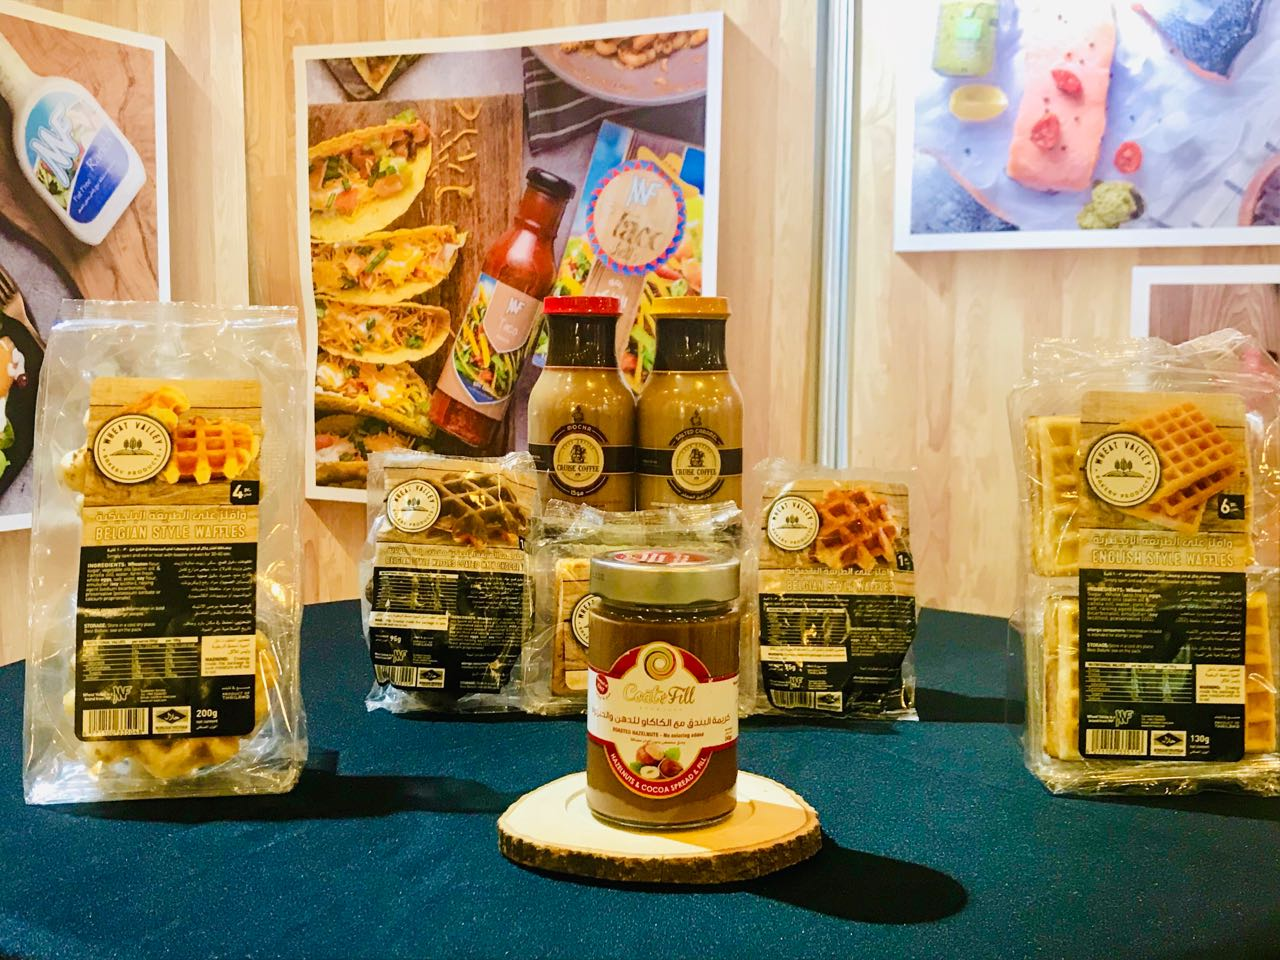 FHAM 2019 Exhibition and International Culinary Challenge Concludes